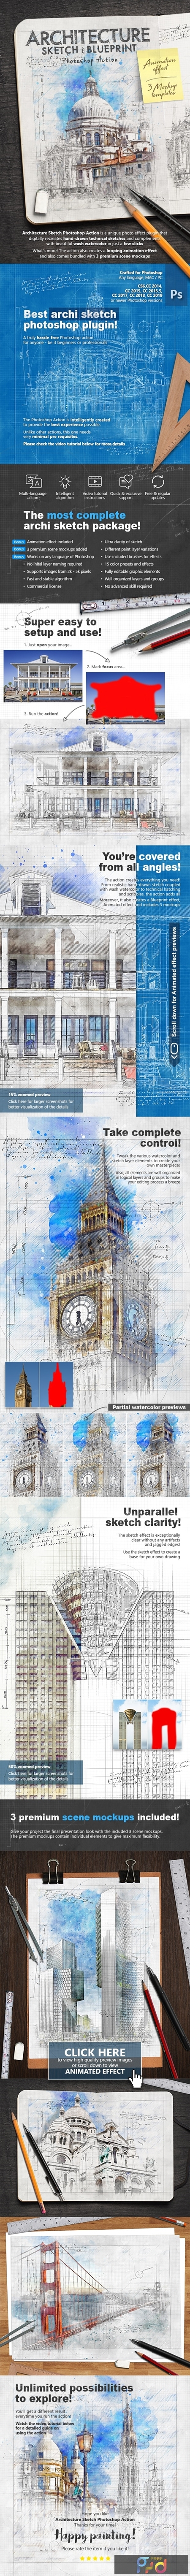 Animated Architecture Sketch and Blueprint Photoshop Action 23954628 1